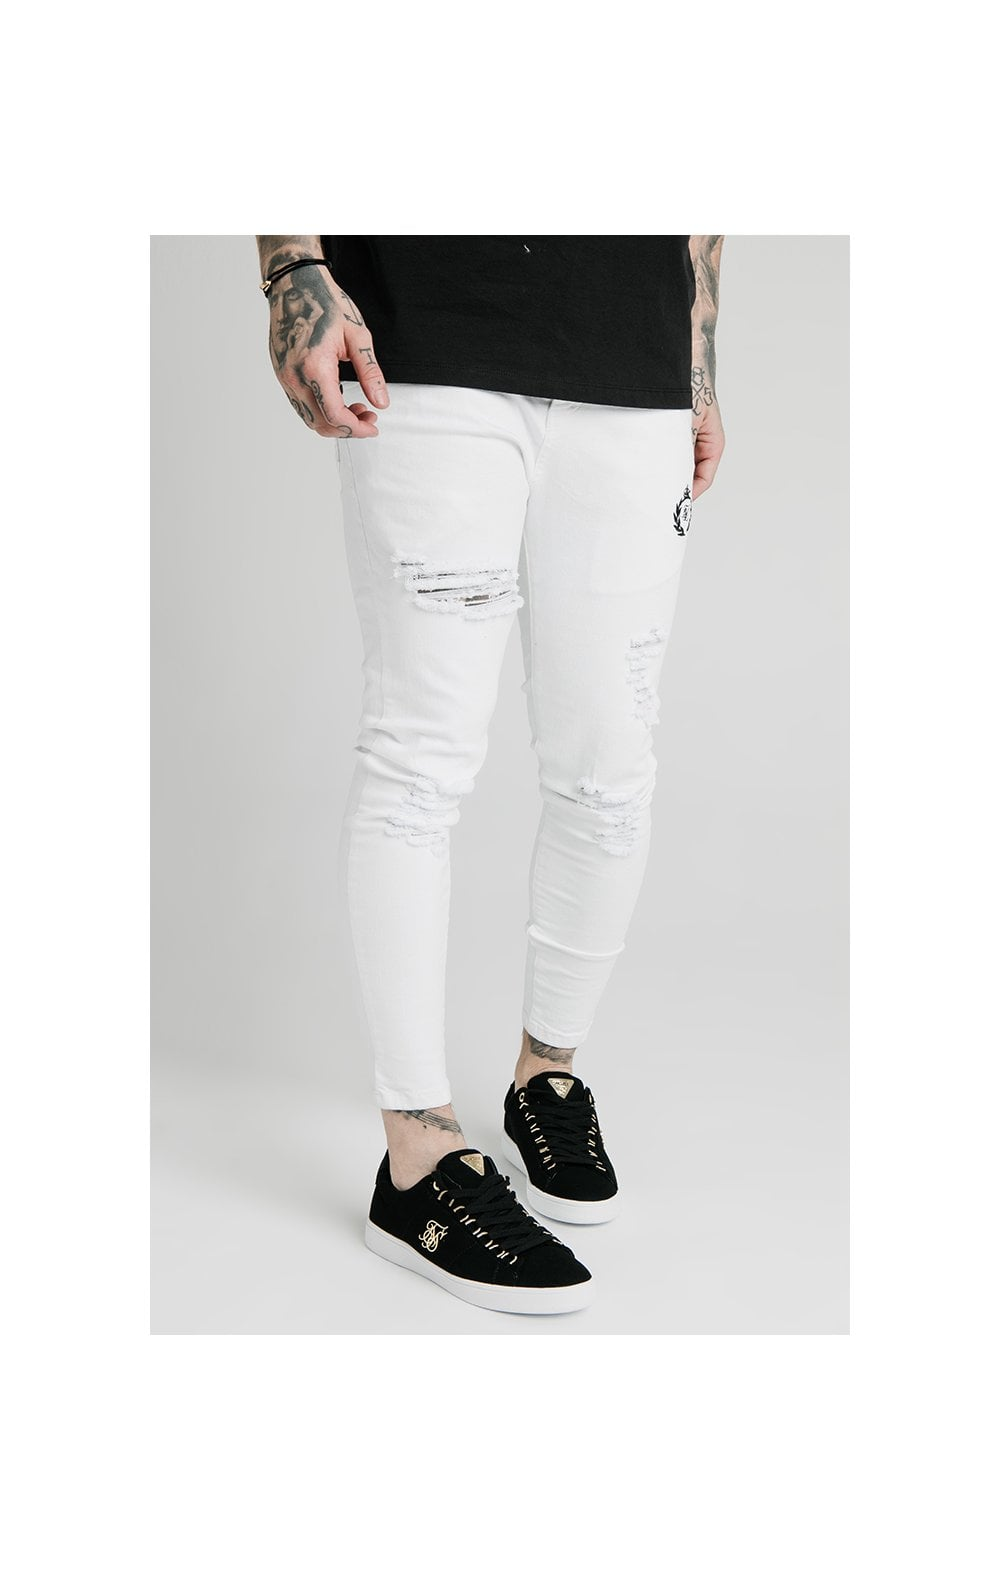 Load image into Gallery viewer, SikSilk Distressed Prestige Skinny Denims - White (2)